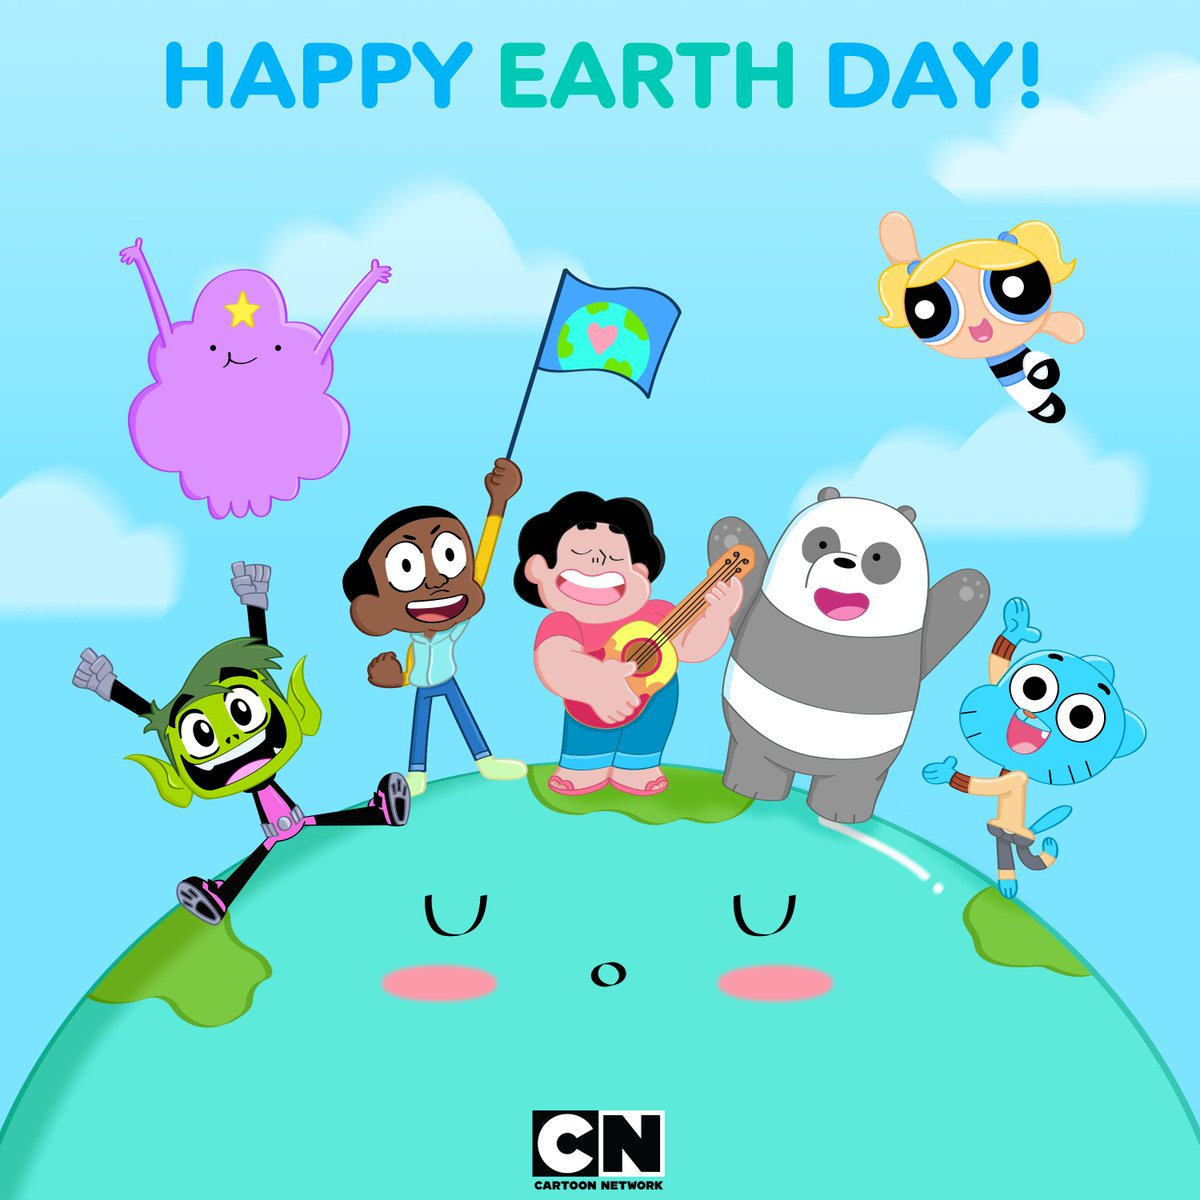 Cartoon Network On Twitter Happy Earthday What Other Tips Do You Have To Help The Planet